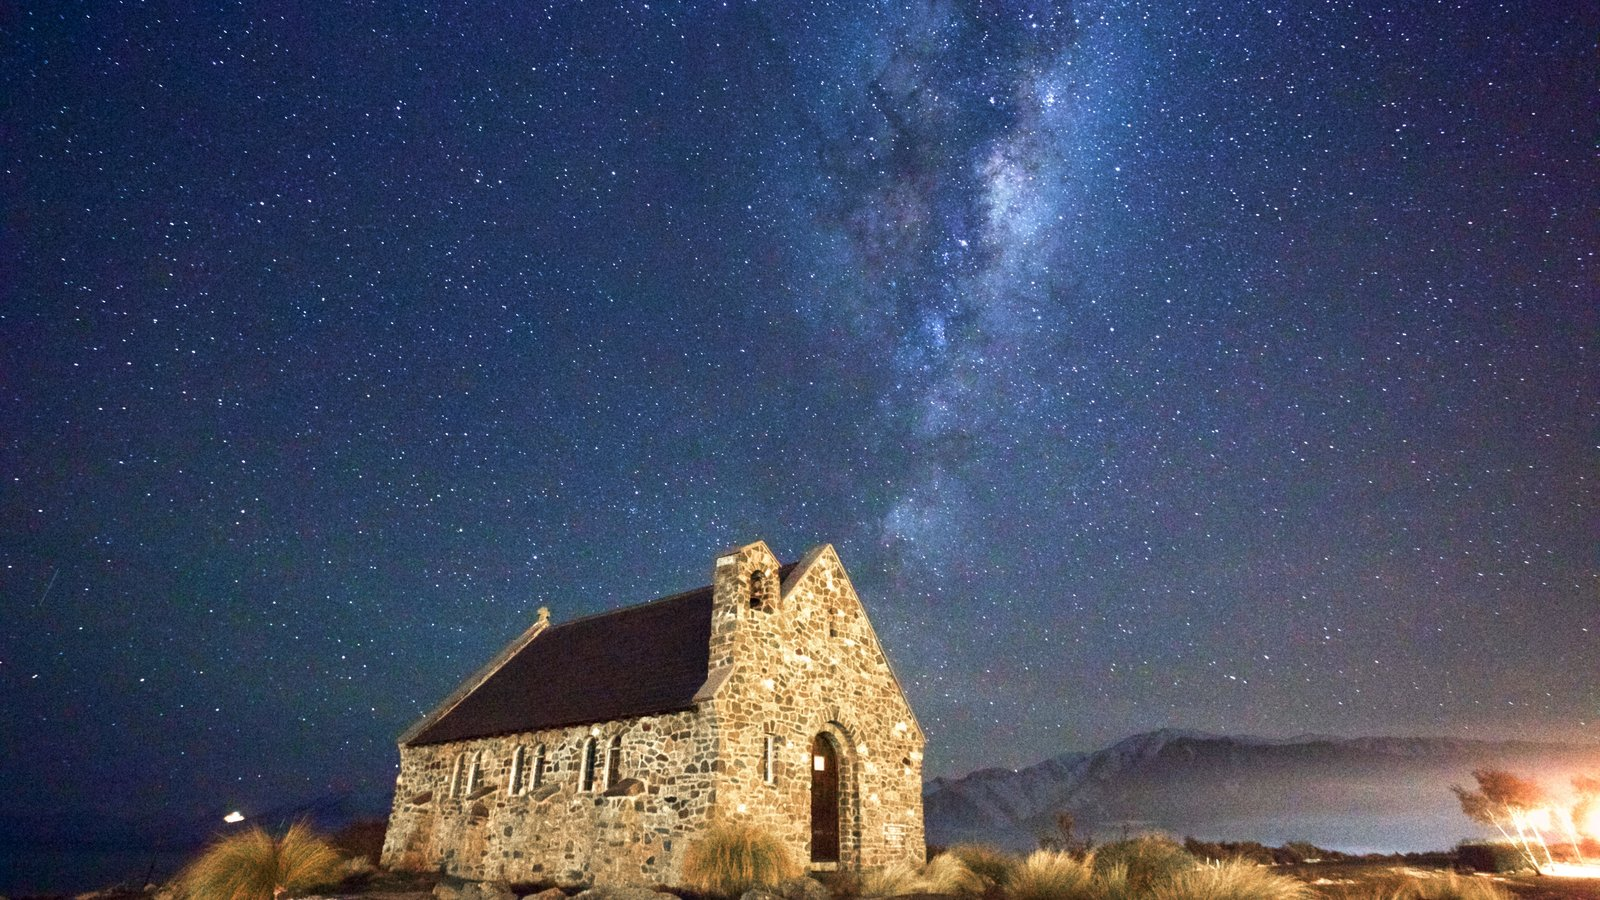 Mackenzie Country showing northern lights, night scenes and heritage architecture